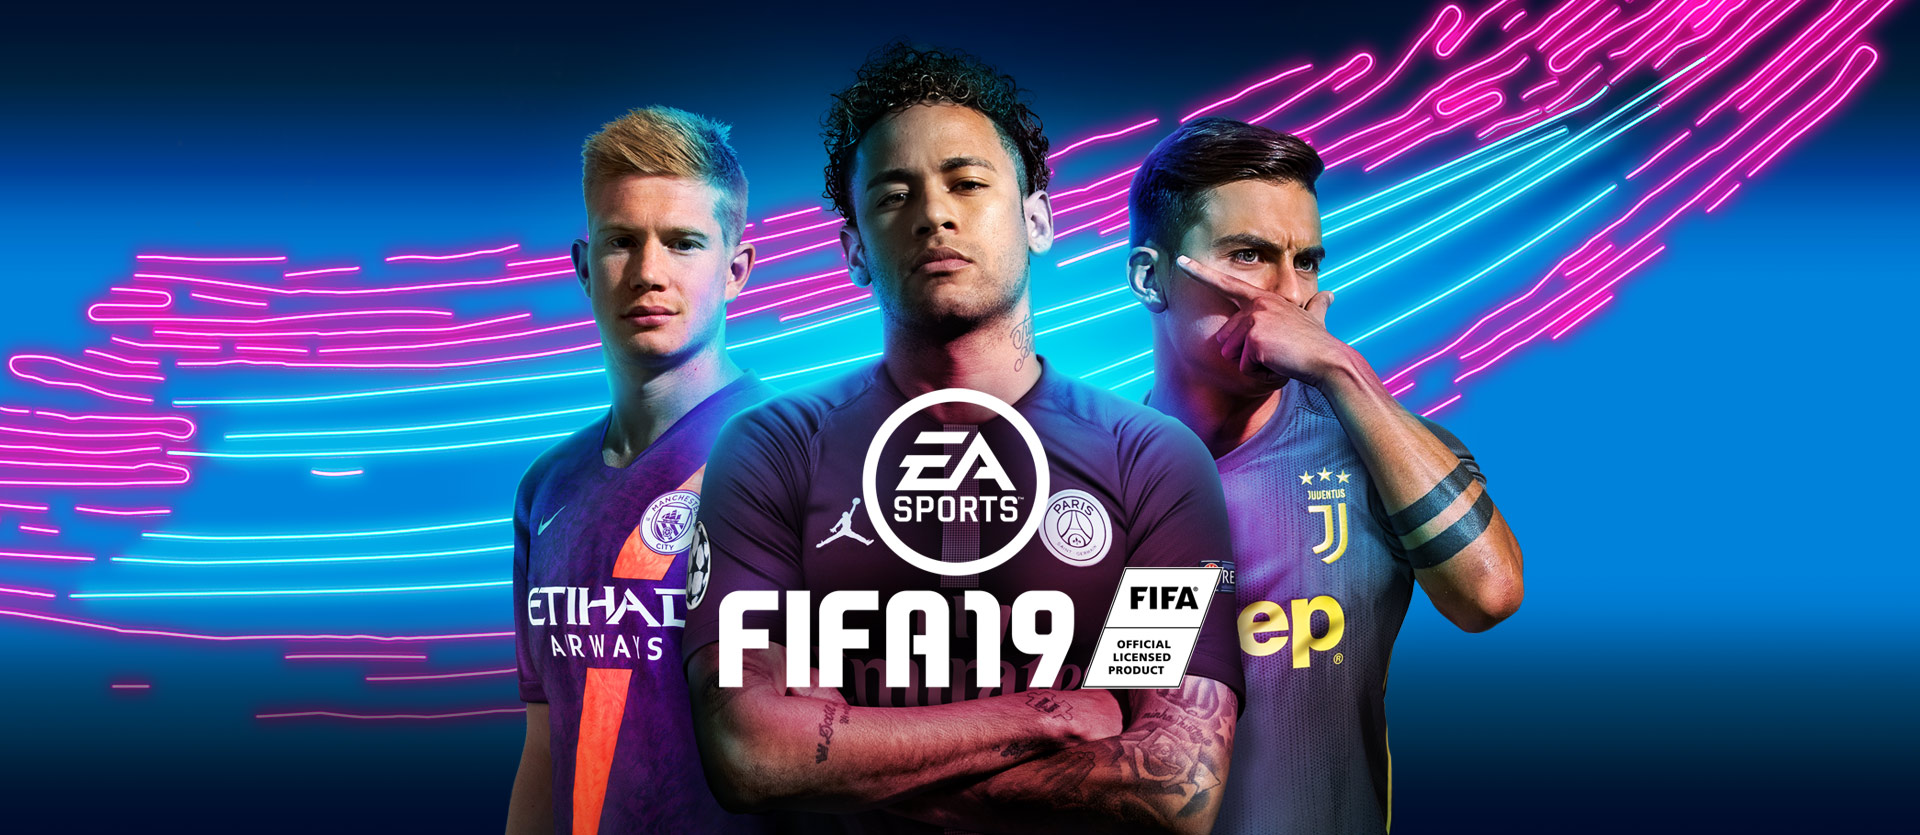 Kevin De Bruyne, Neymar e Paulo Dybala da FIFA 19 Ultimate Team com camisolas da ultimate team